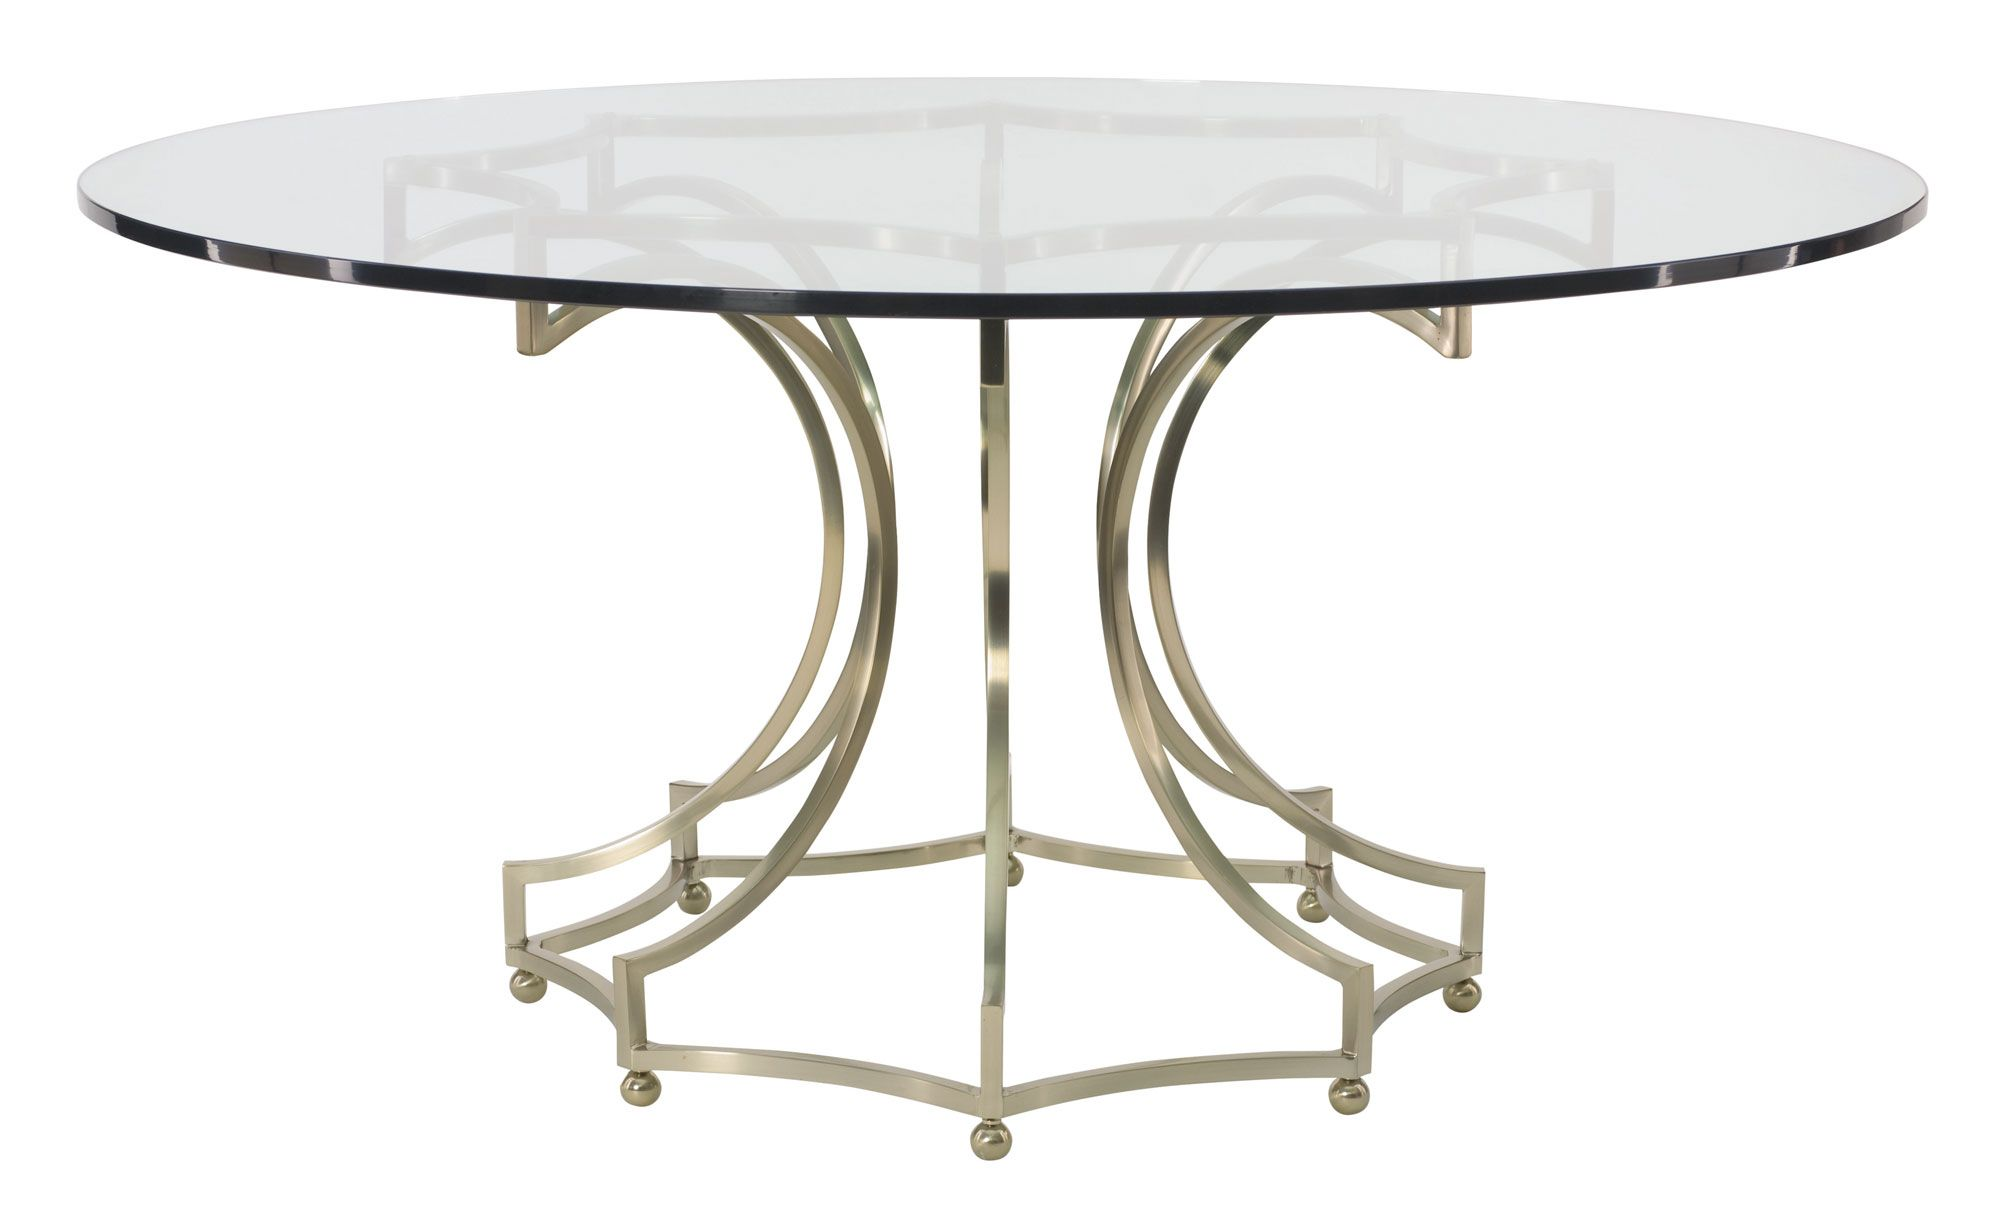 360 773 998 e60 miramont round dining table glass top with metal base bernhardt dia 60 h 30. Black Bedroom Furniture Sets. Home Design Ideas